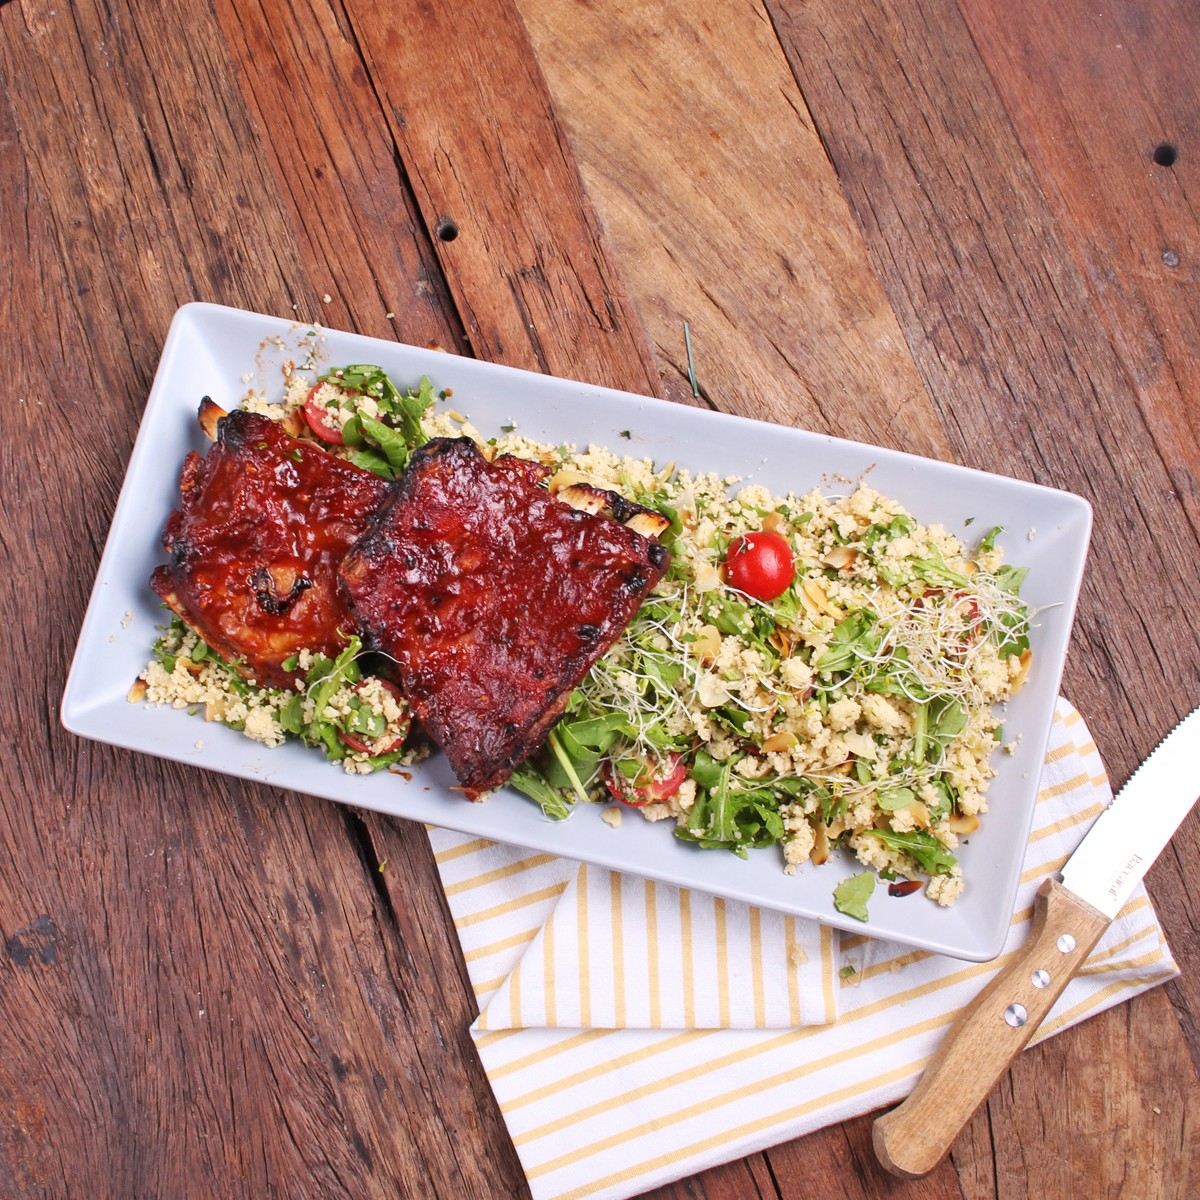 Sweet And Spicy BBQ Pork Ribs With Herbed Cous Cous - Three Aussie Farmers Sweet and Spicy BBQ Pork Ribs